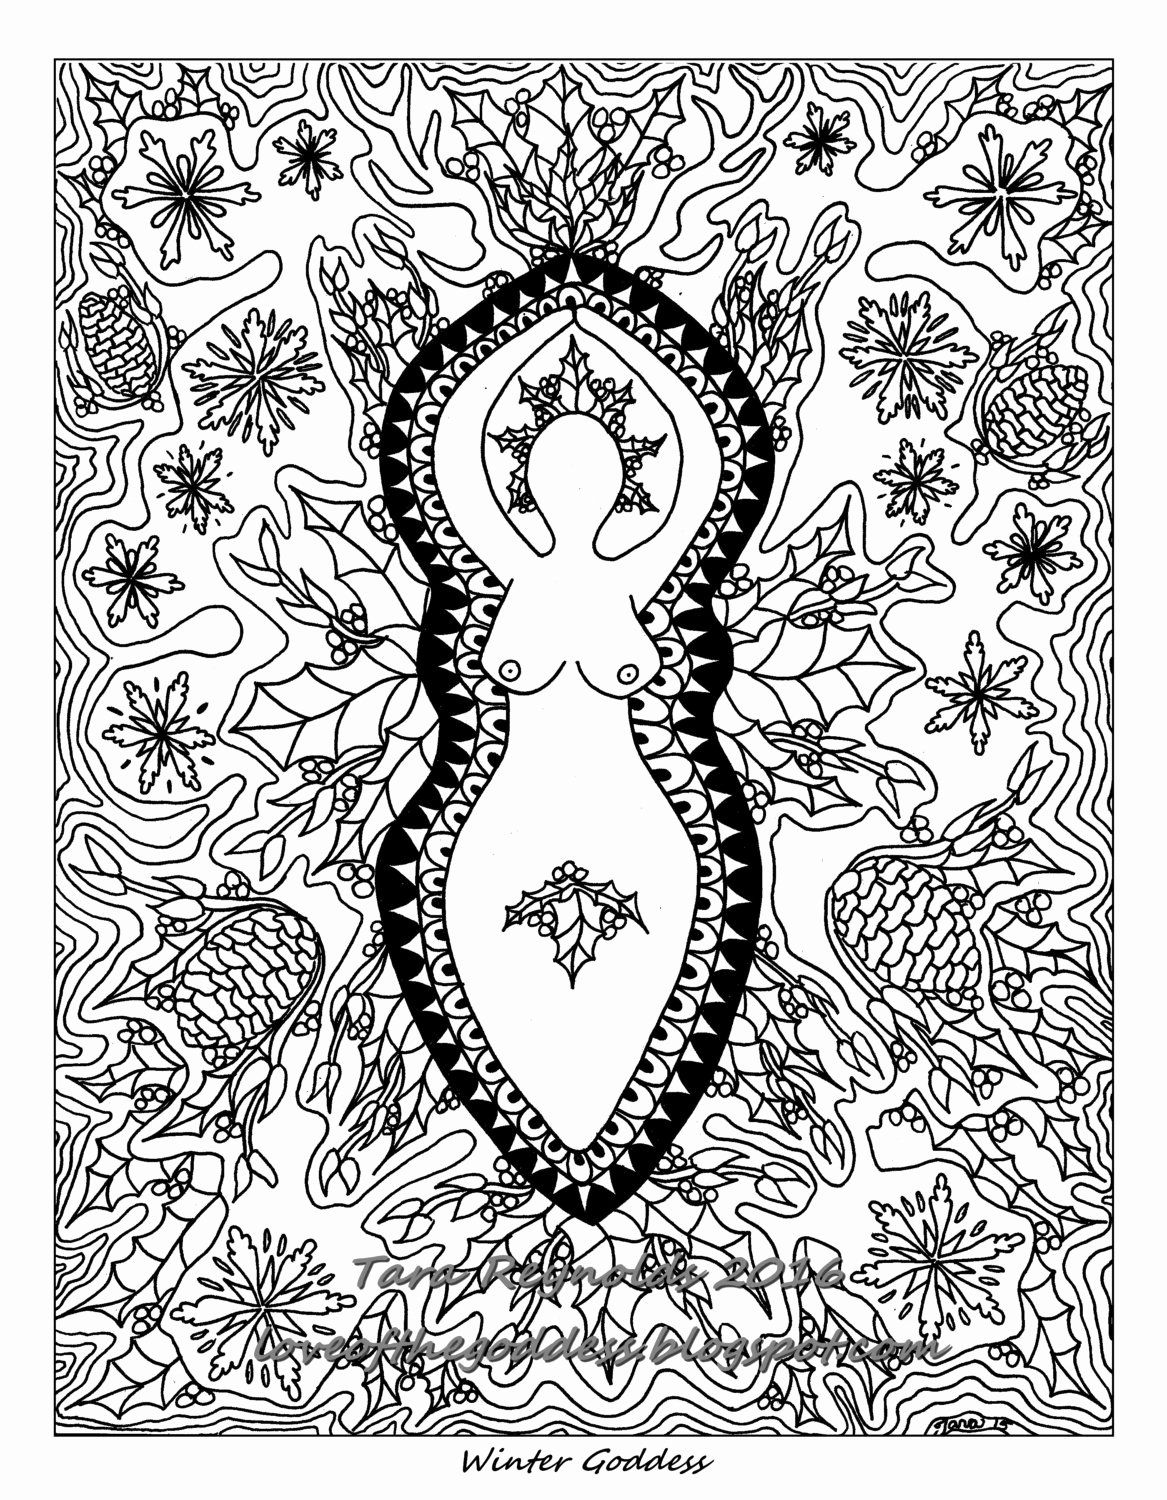 Winter Solstice Coloring Pages In 2020 Coloring Pages Coloring Pages Winter Mandala Coloring Pages